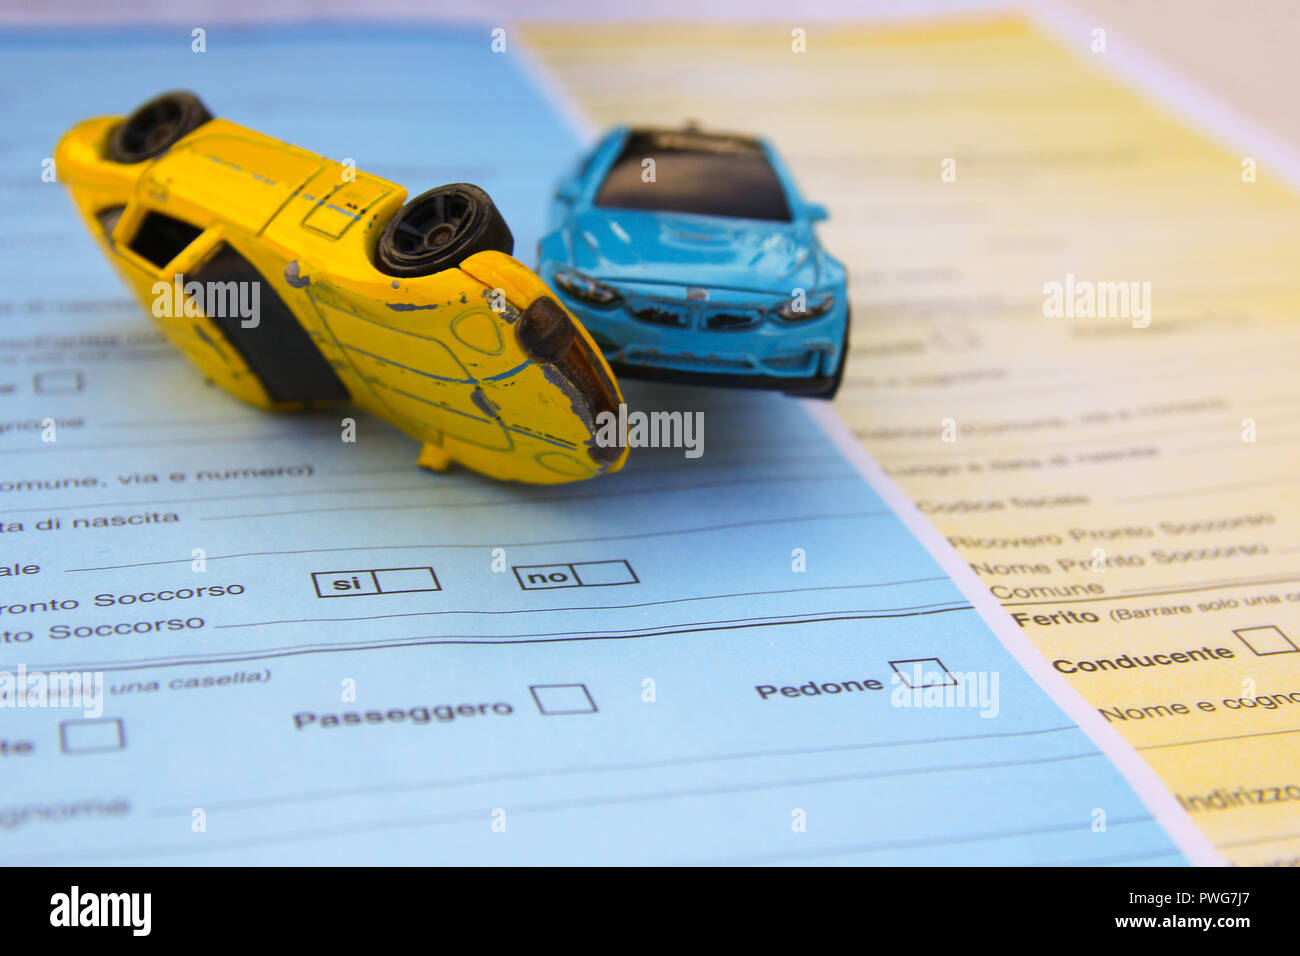 Motor vehicle collision between two cars - Stock Image